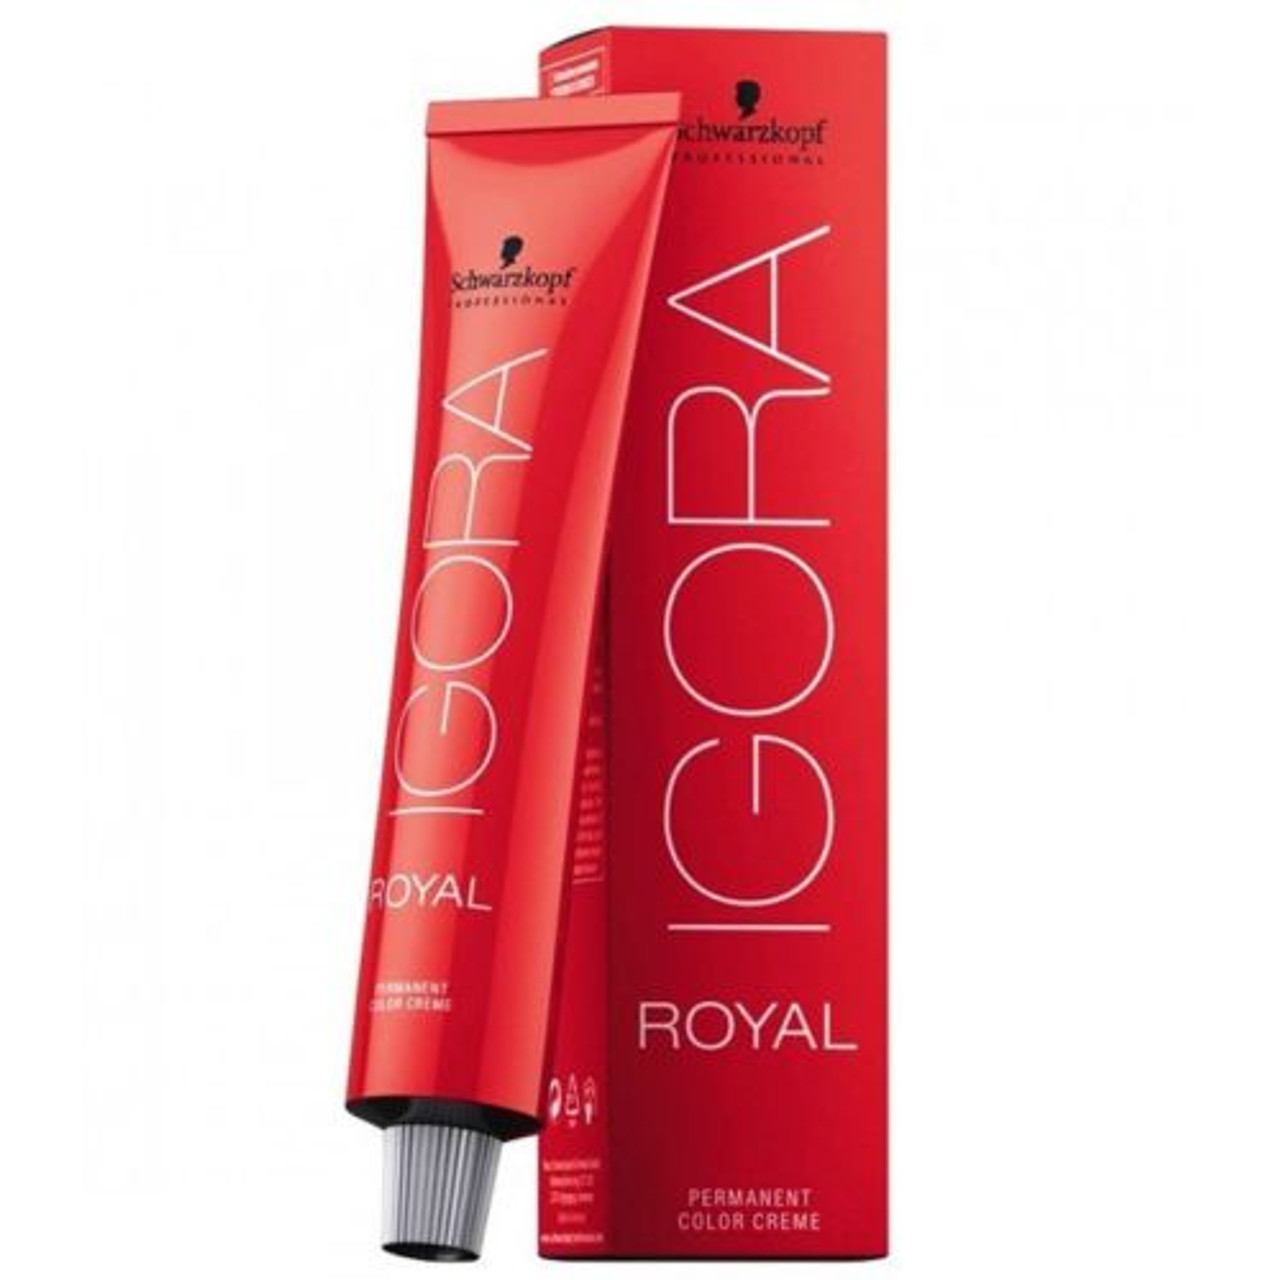 Schwarzkopf Igora Royal Permanent Color Creme - 3-1 Dark Ash Brown